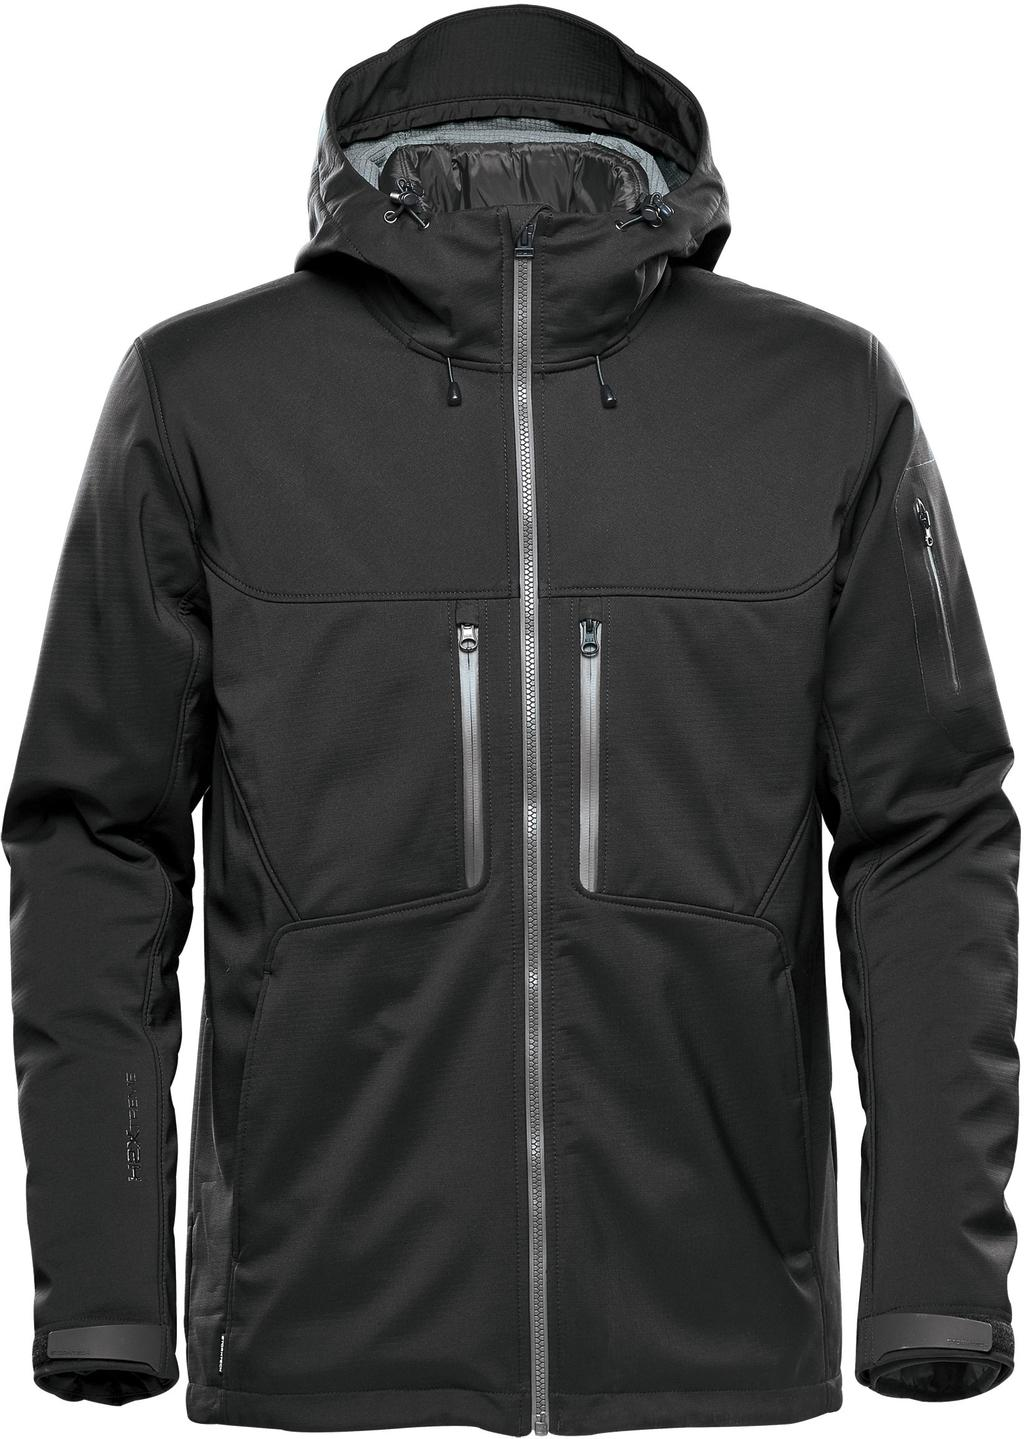 Epsilon System Jacket